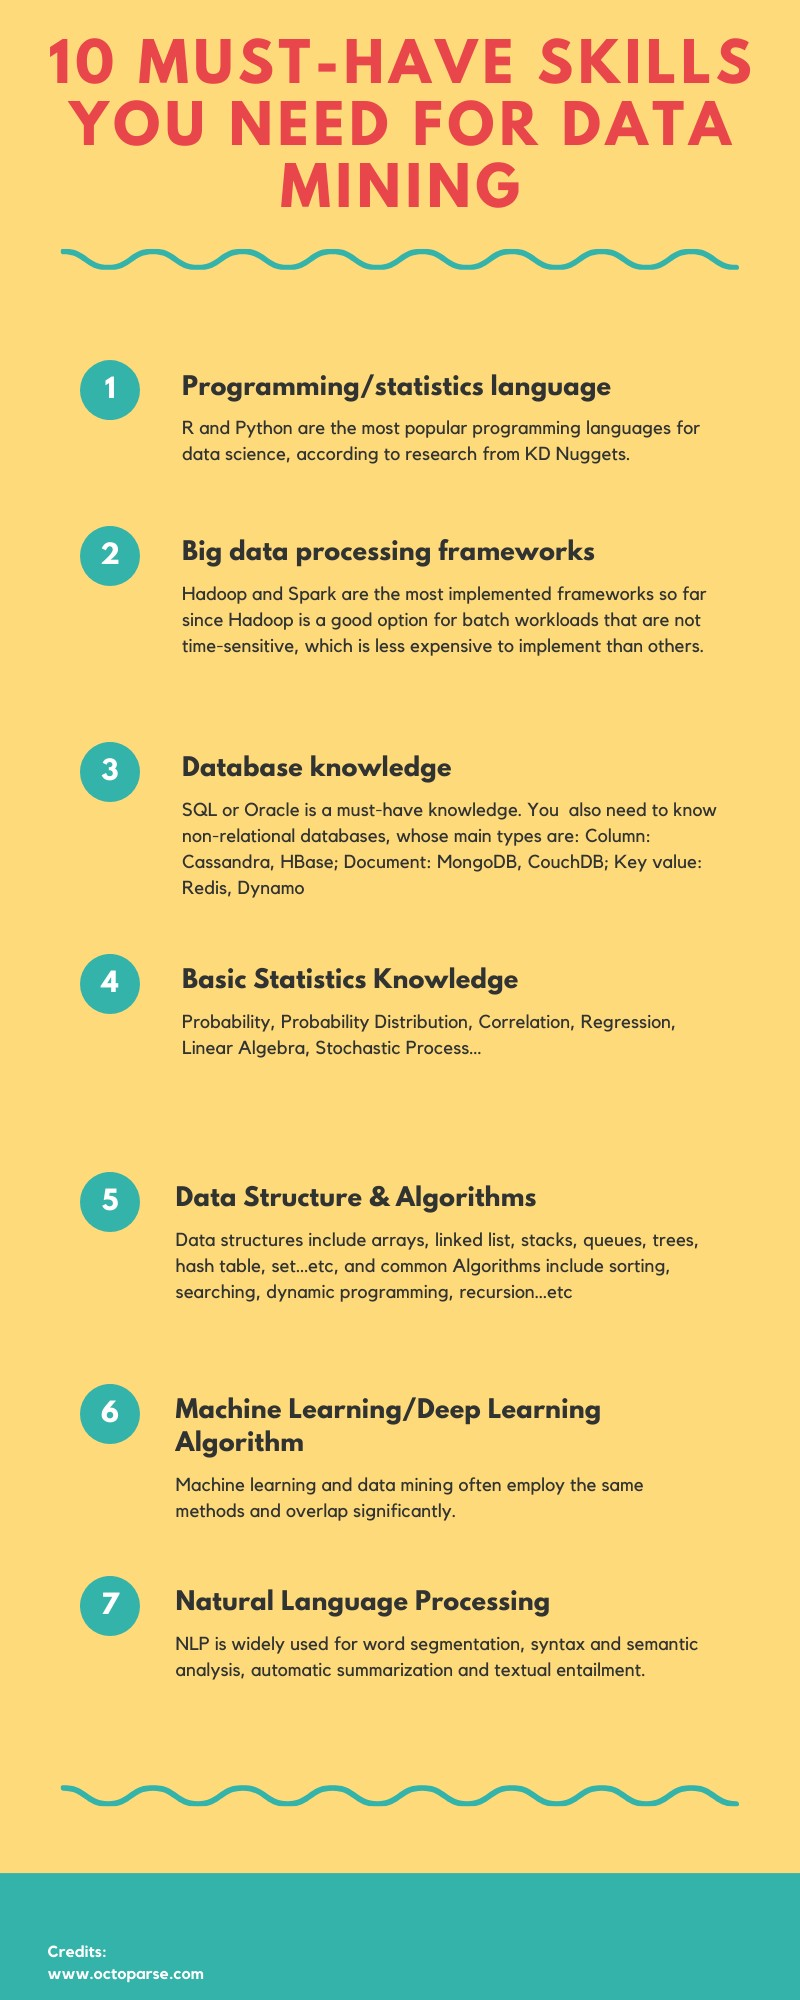 10 Must-have Skills You Need for Data Mining